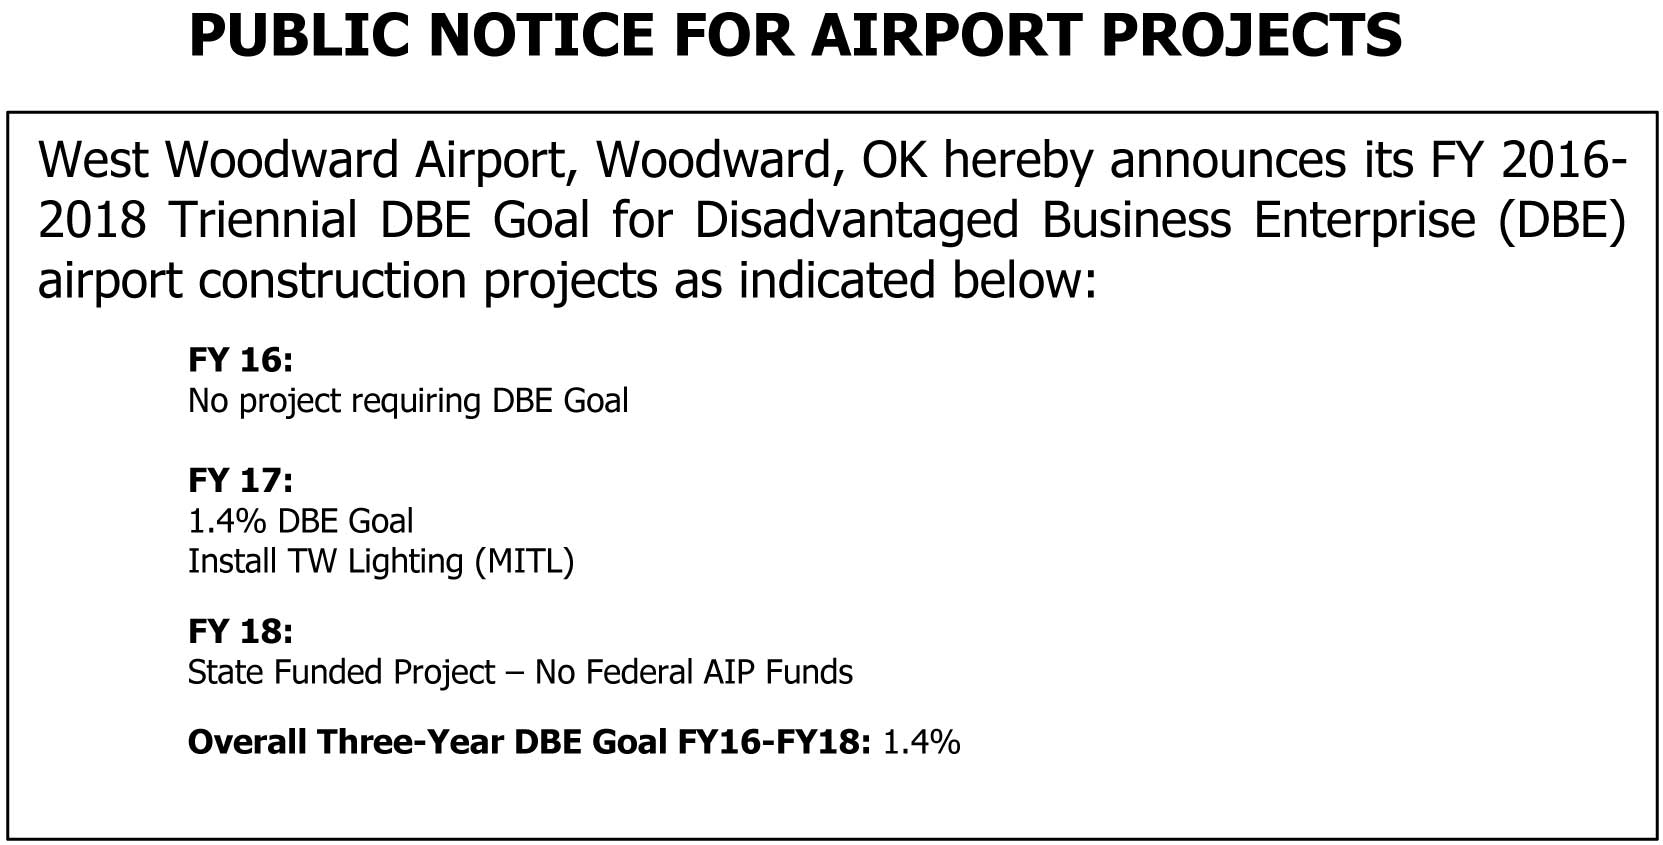 PUBLIC-NOTICE-FOR-AIRPORT-PROJECTS---West-Woodward-AP-092316